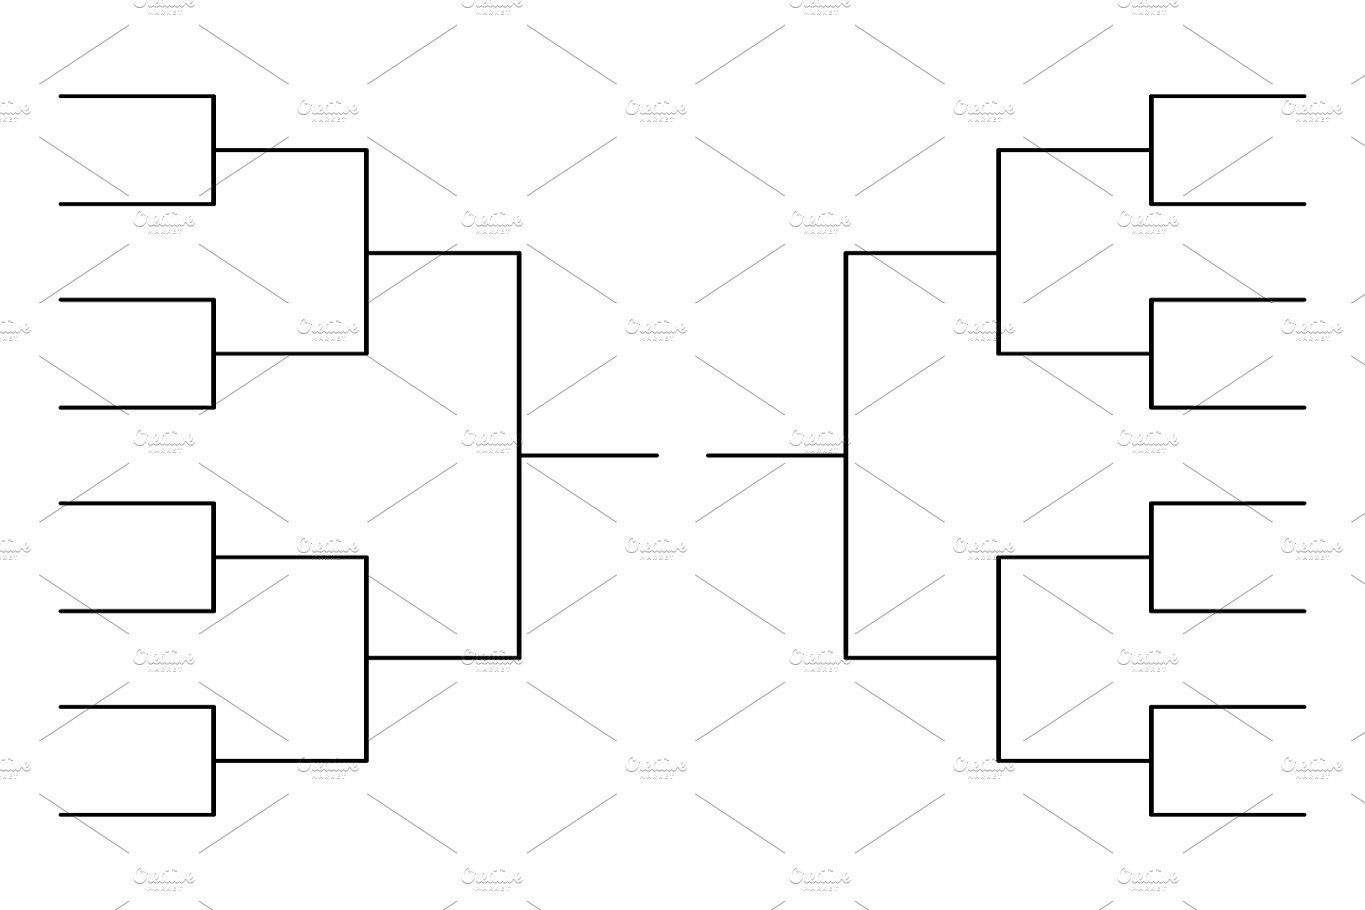 Tournament Bracket Template Templates Tournaments March Madness Bracket